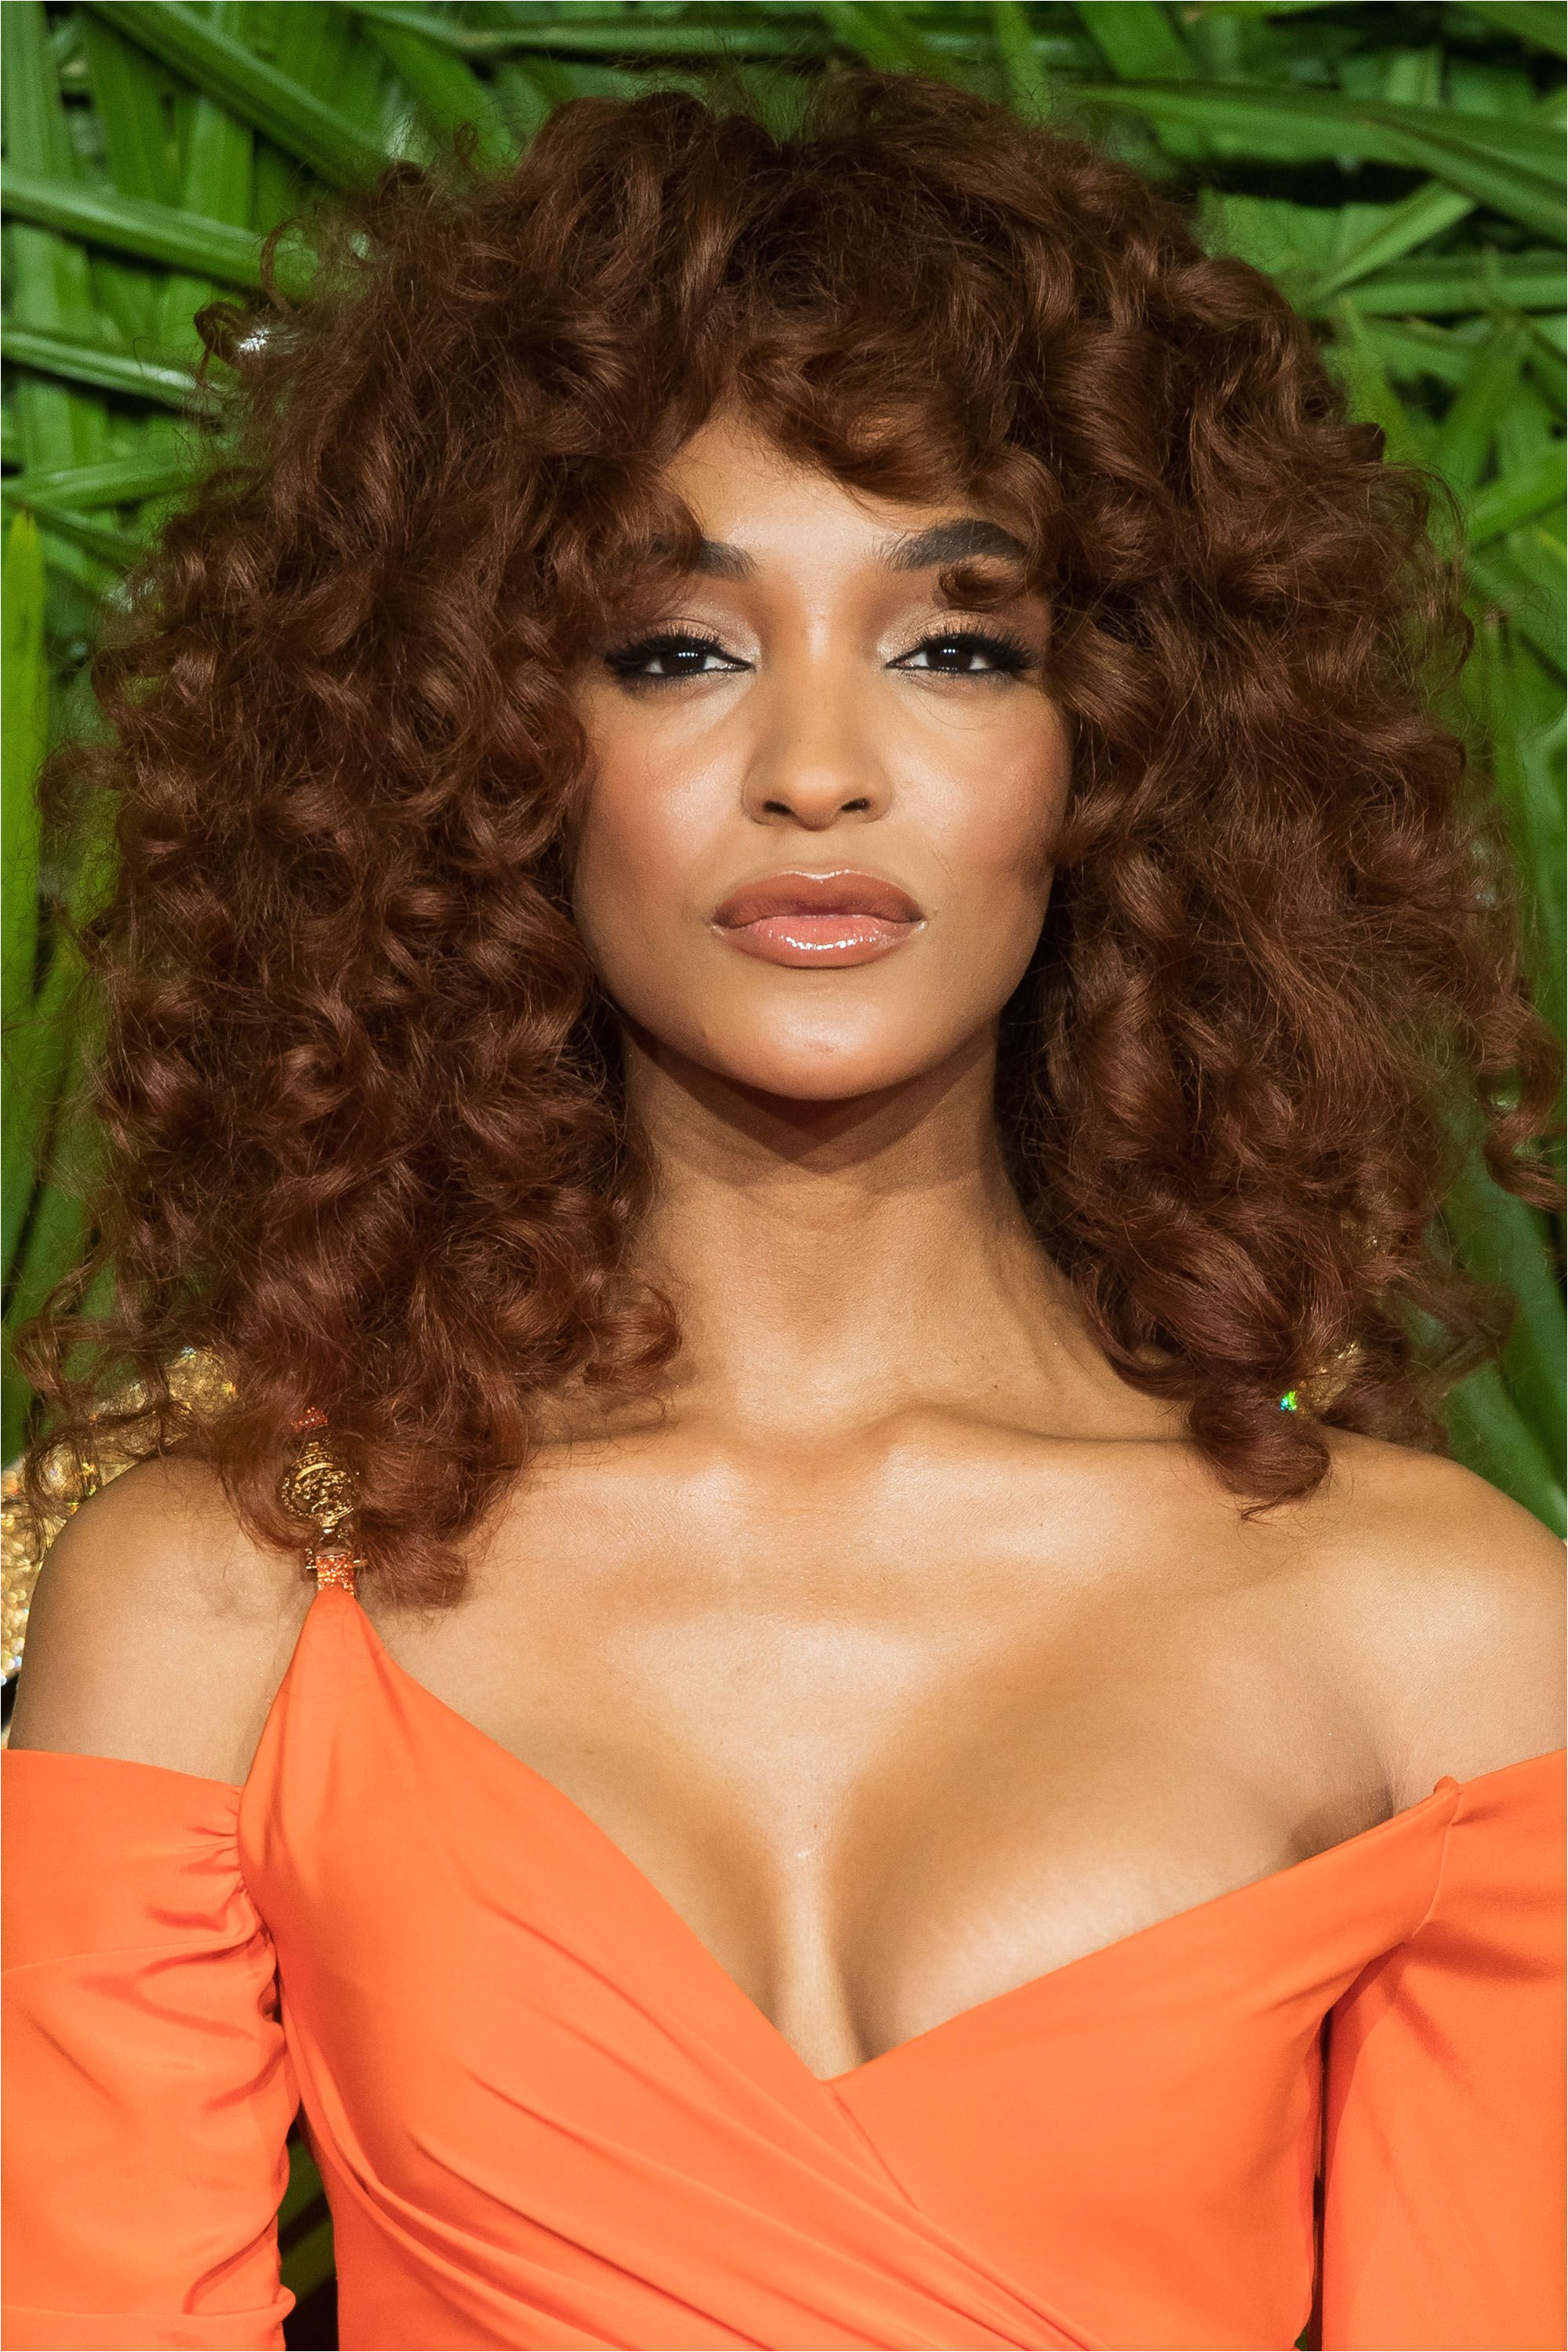 Brazilian Curly Hairstyles Inspirational Hairstyles for Medium Curly Hair Videos Curly Hair Styling Tips